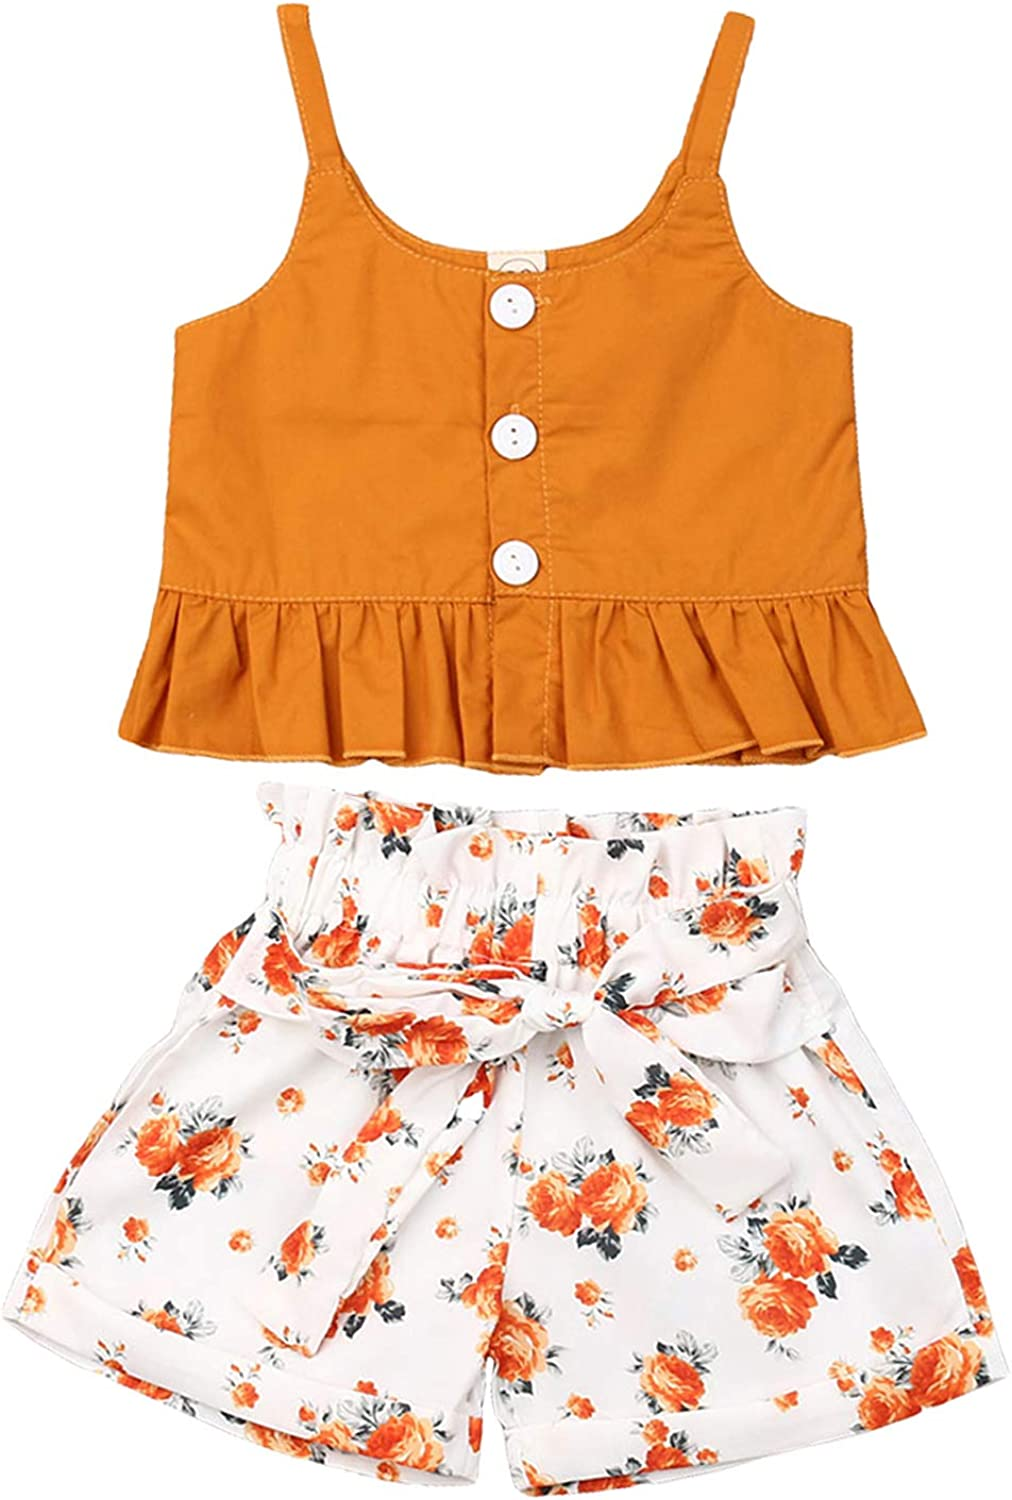 Toddler Kids Girl Clothing Suspender Ruffle Sleeveless Crop Top + Shorts Outfit Set Toddler Girl Summer Clothes